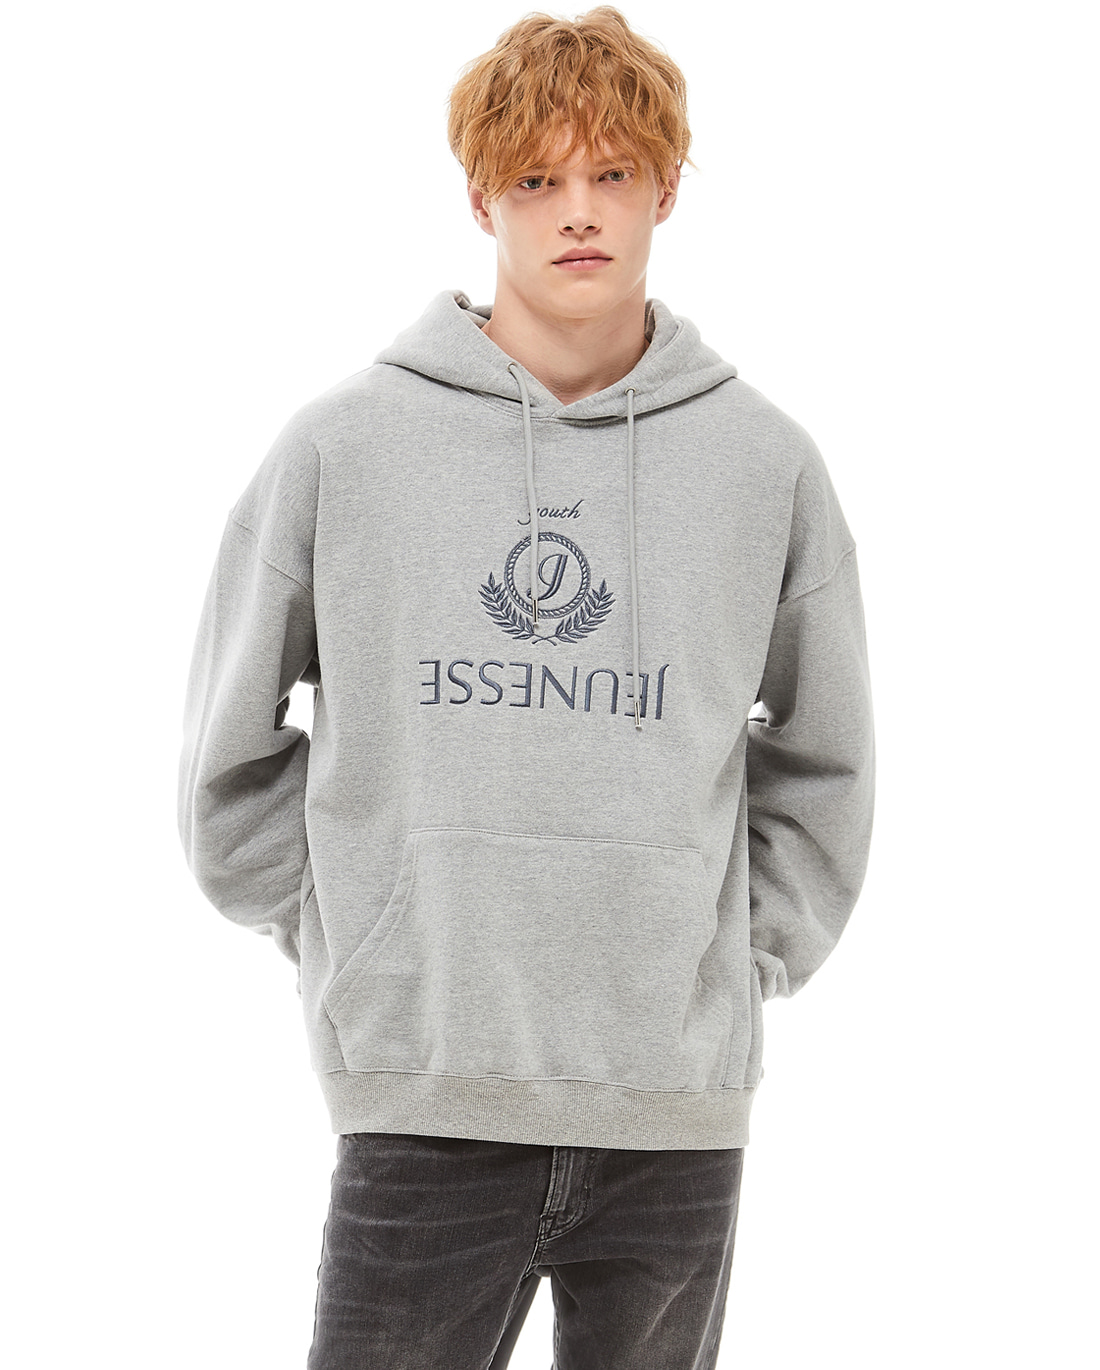 Jeunesse Embroidery Hoodie Grey (4단 헤비 쭈리)